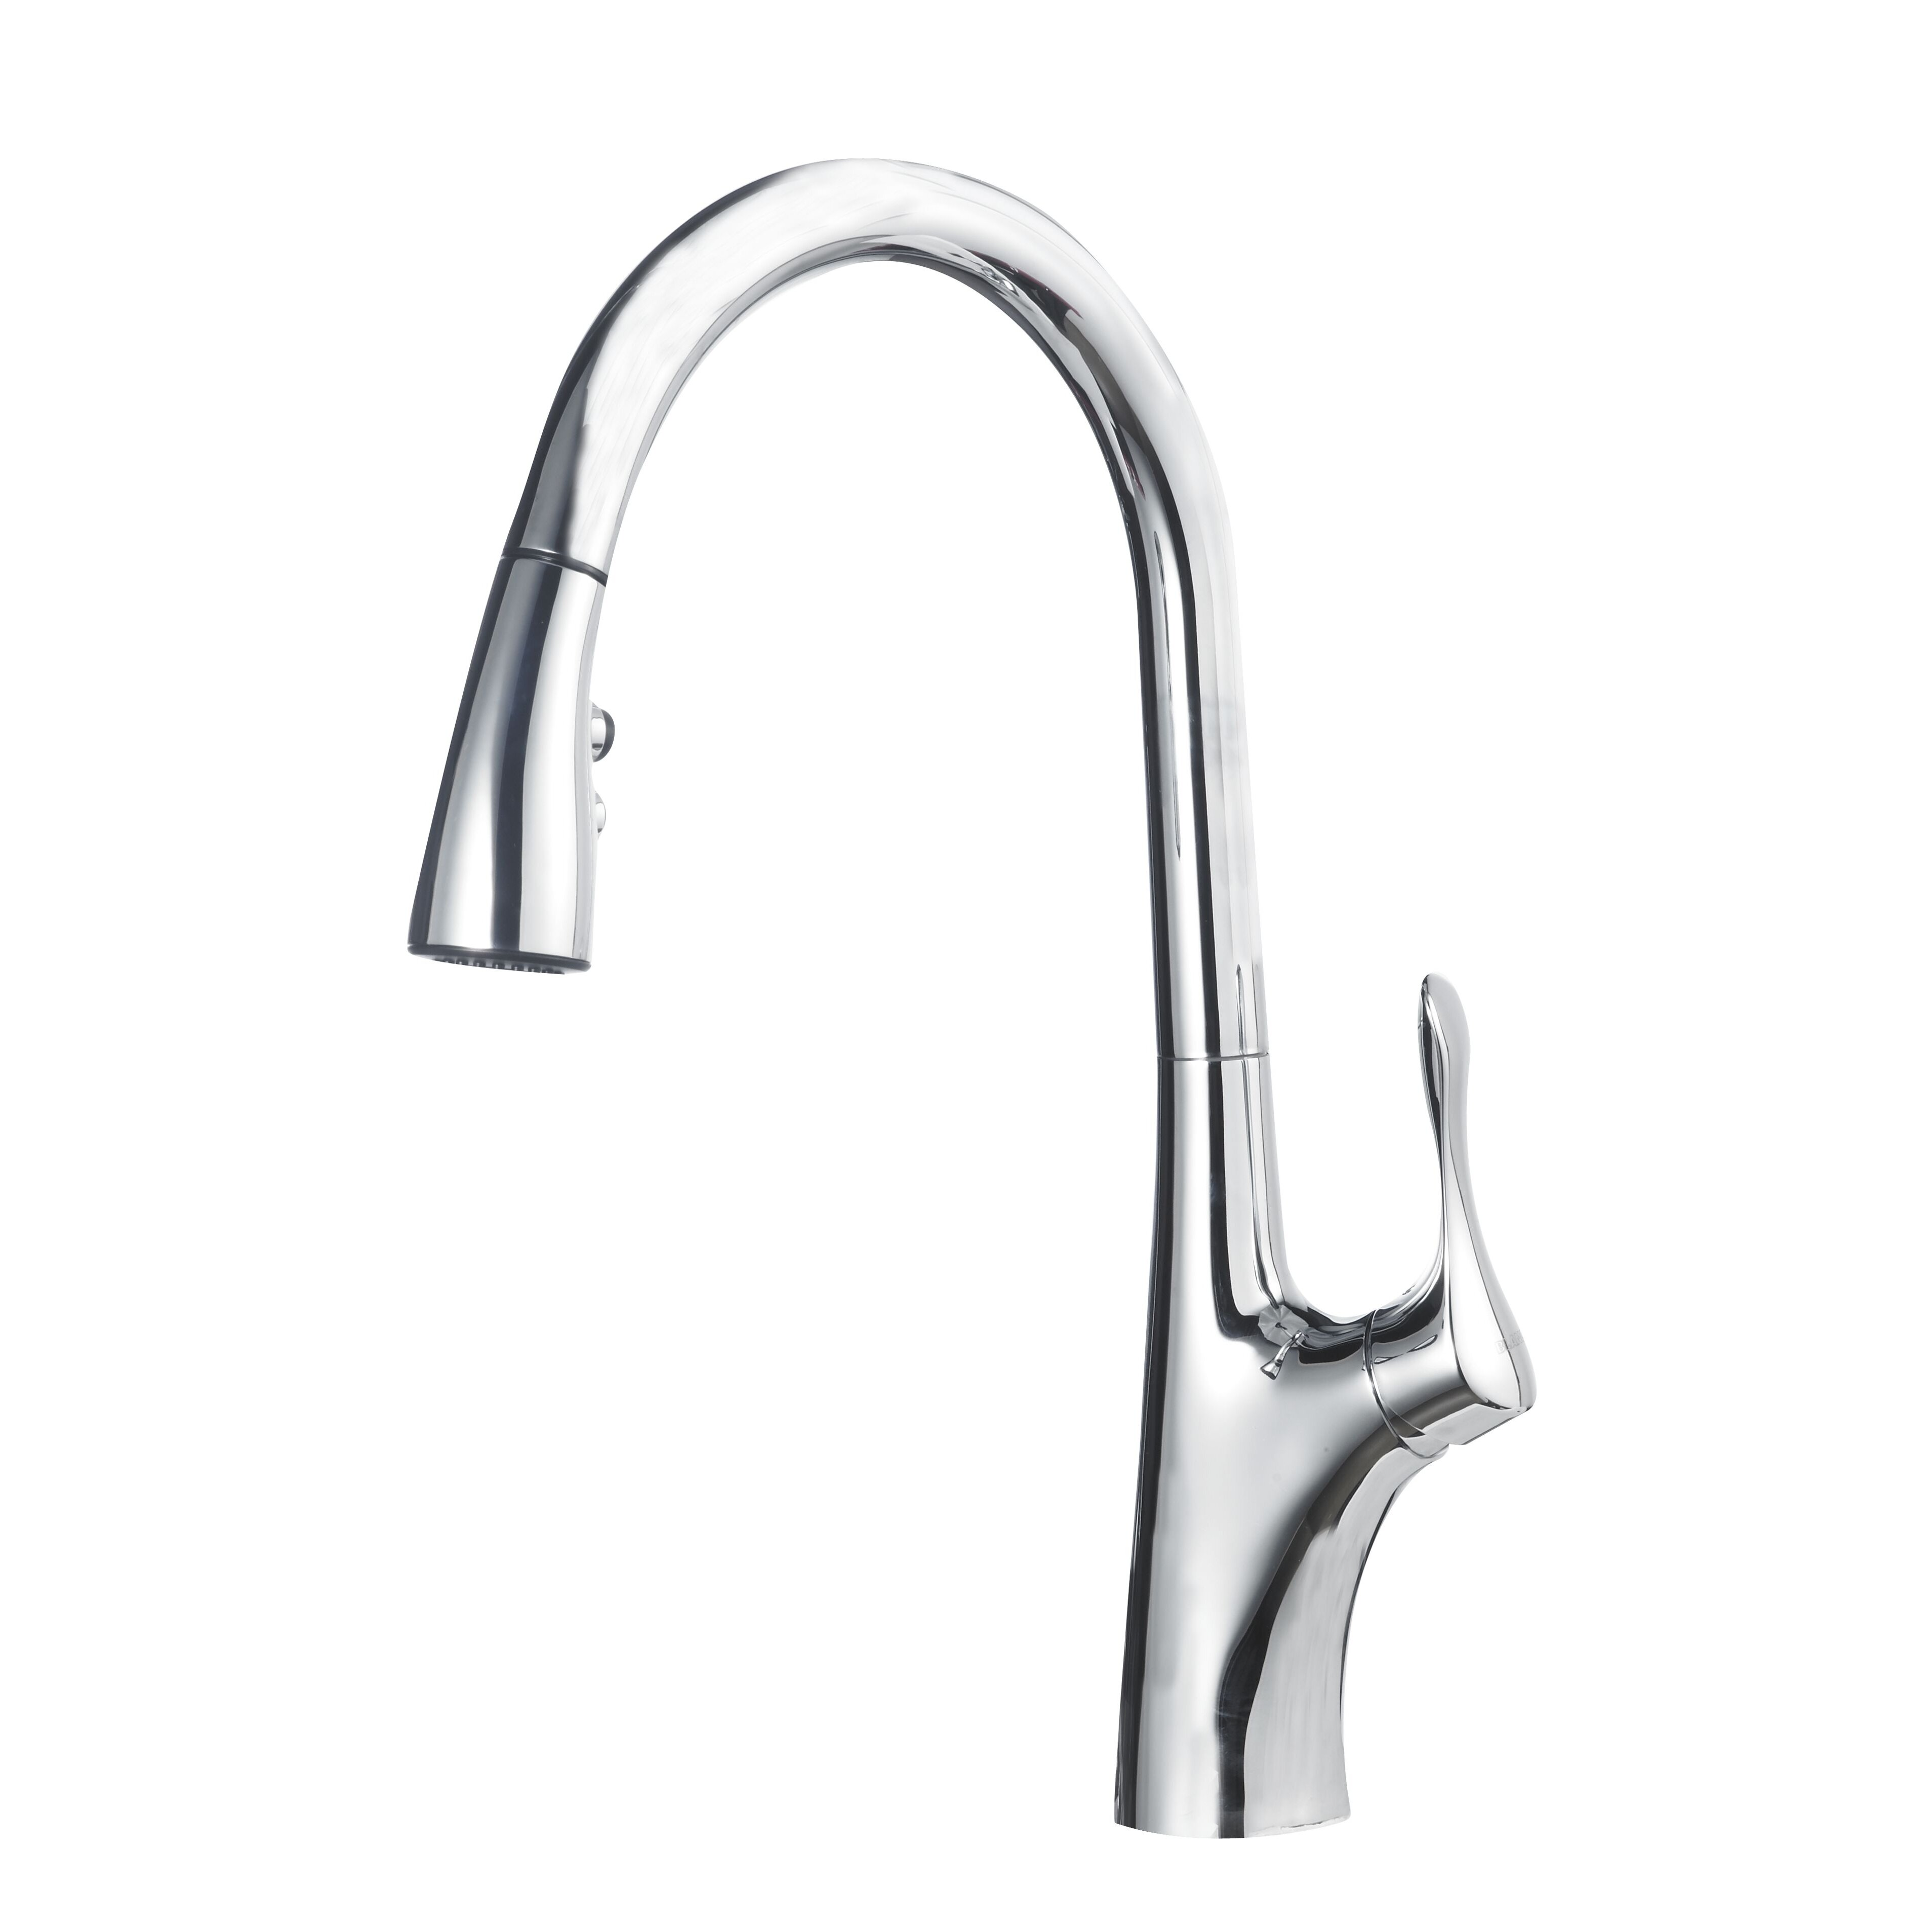 Blanco Kitchen Faucet Reviews : Blanco Napa Single Handle Deck Mounted Standard Kitchen Faucet with ...